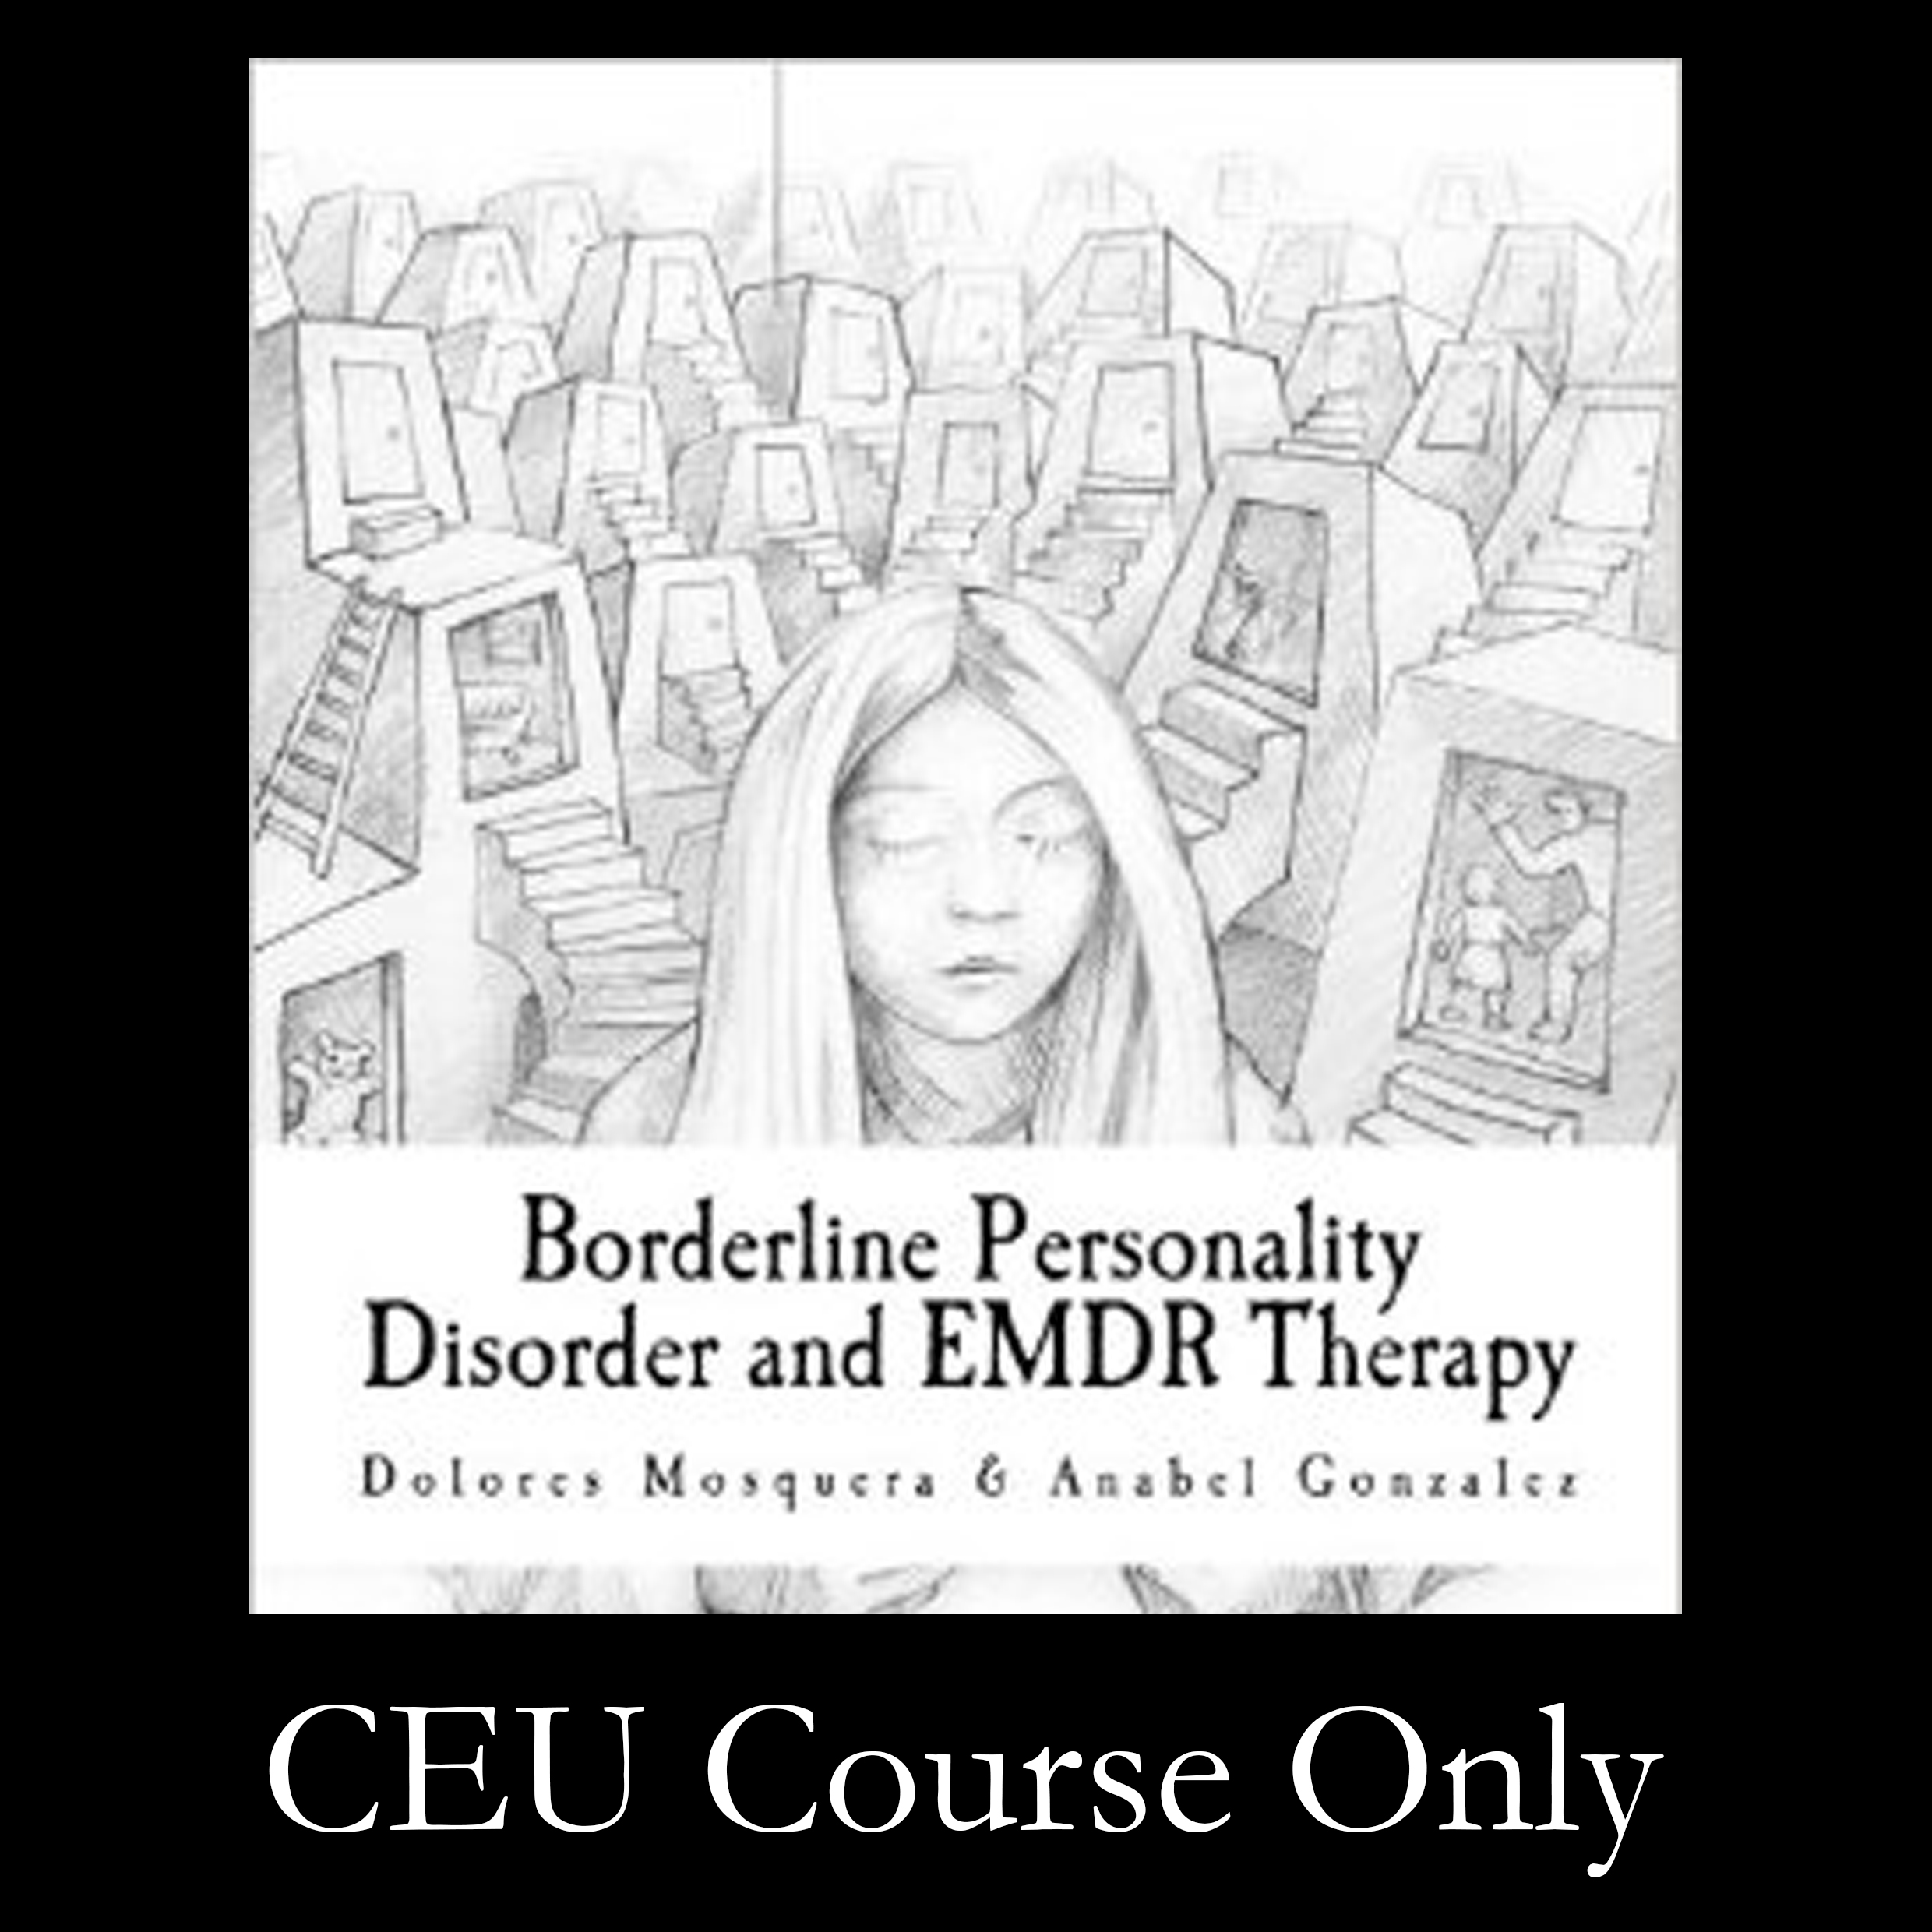 Borderline Personality Disorder with EMDR Therapy, Dolores